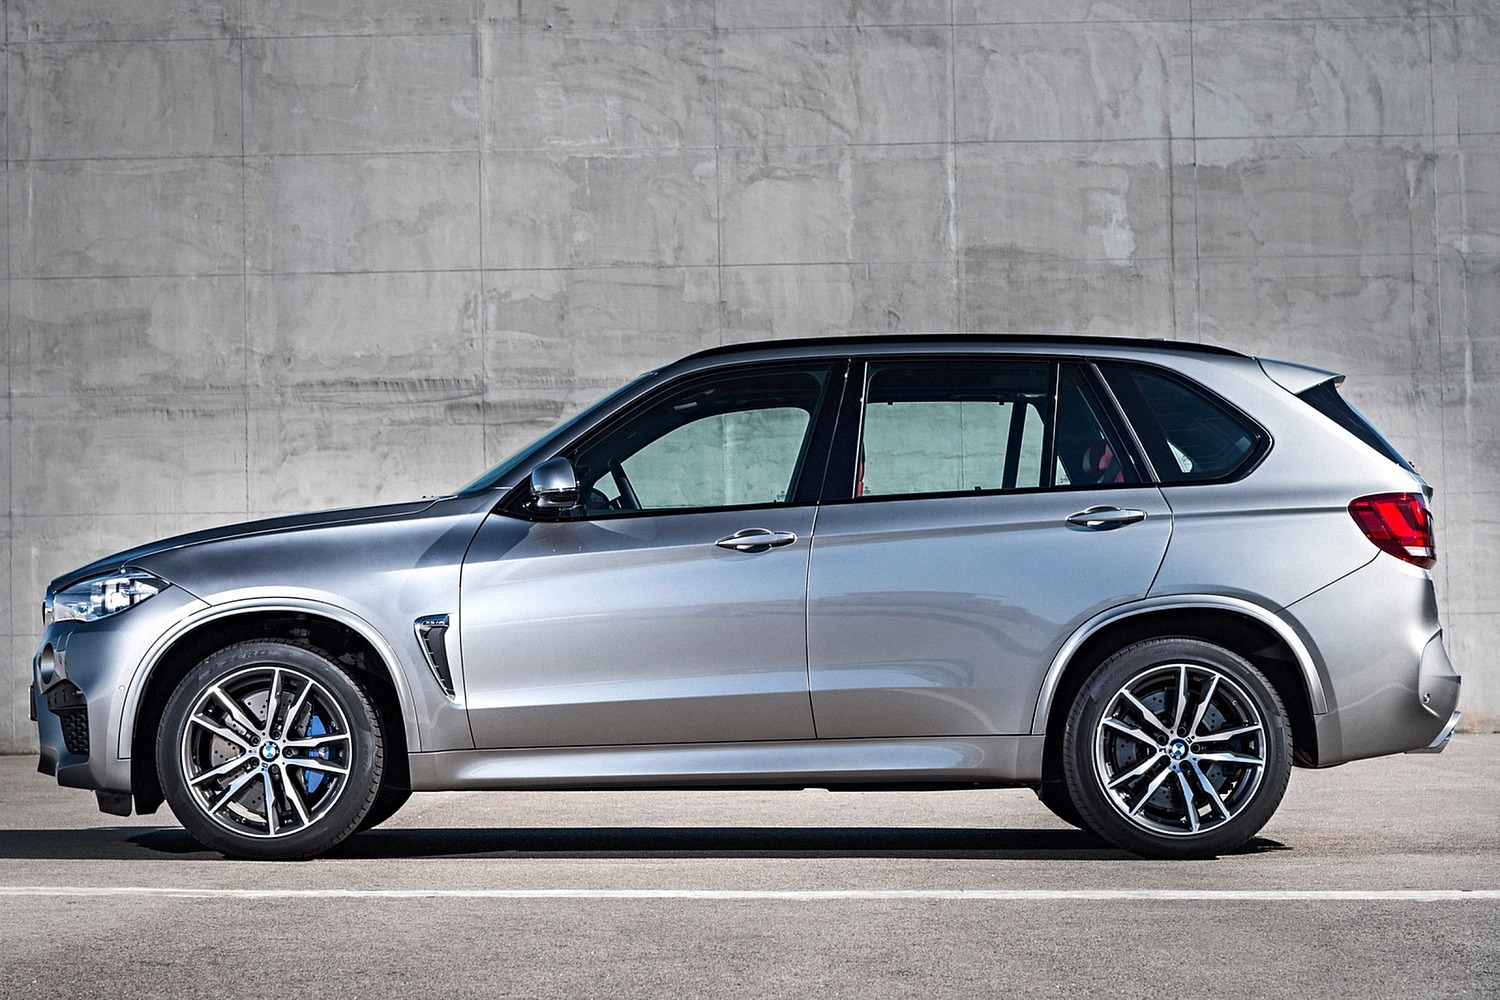 BMW X5 M 4dr SUV Exterior (2015 model year shown)